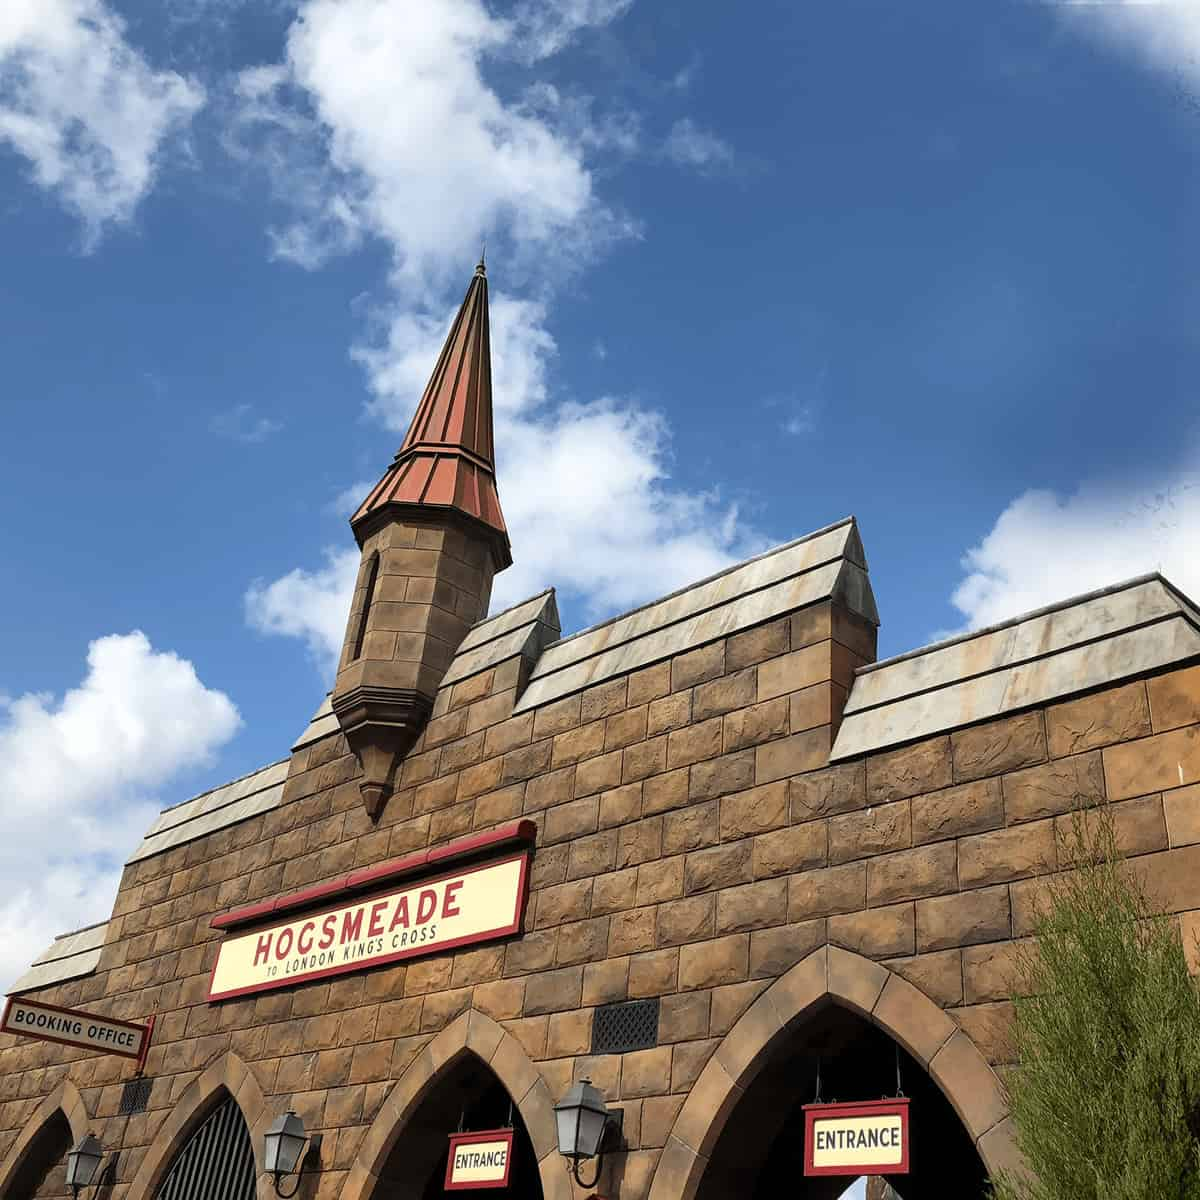 Wizarding World of Harry Potter Tips - Universal Orlando Tips: Should you get the Universal Express Unlimited? Is Universals early entry worth it? Compare Universal Studio hotels and more. Great mom-to-mom tips for planning your family vacation to Orlando. #HarryPotterWorld #UniversalOrlando #FamilyTravel #UniversalStudios #Orlando #Florida *Loving this REAL parent advice! So helpful. Pinning this for our trip! So helpful. Hogsmeade and Universal's Islands of Adventure sounds AWESOME.